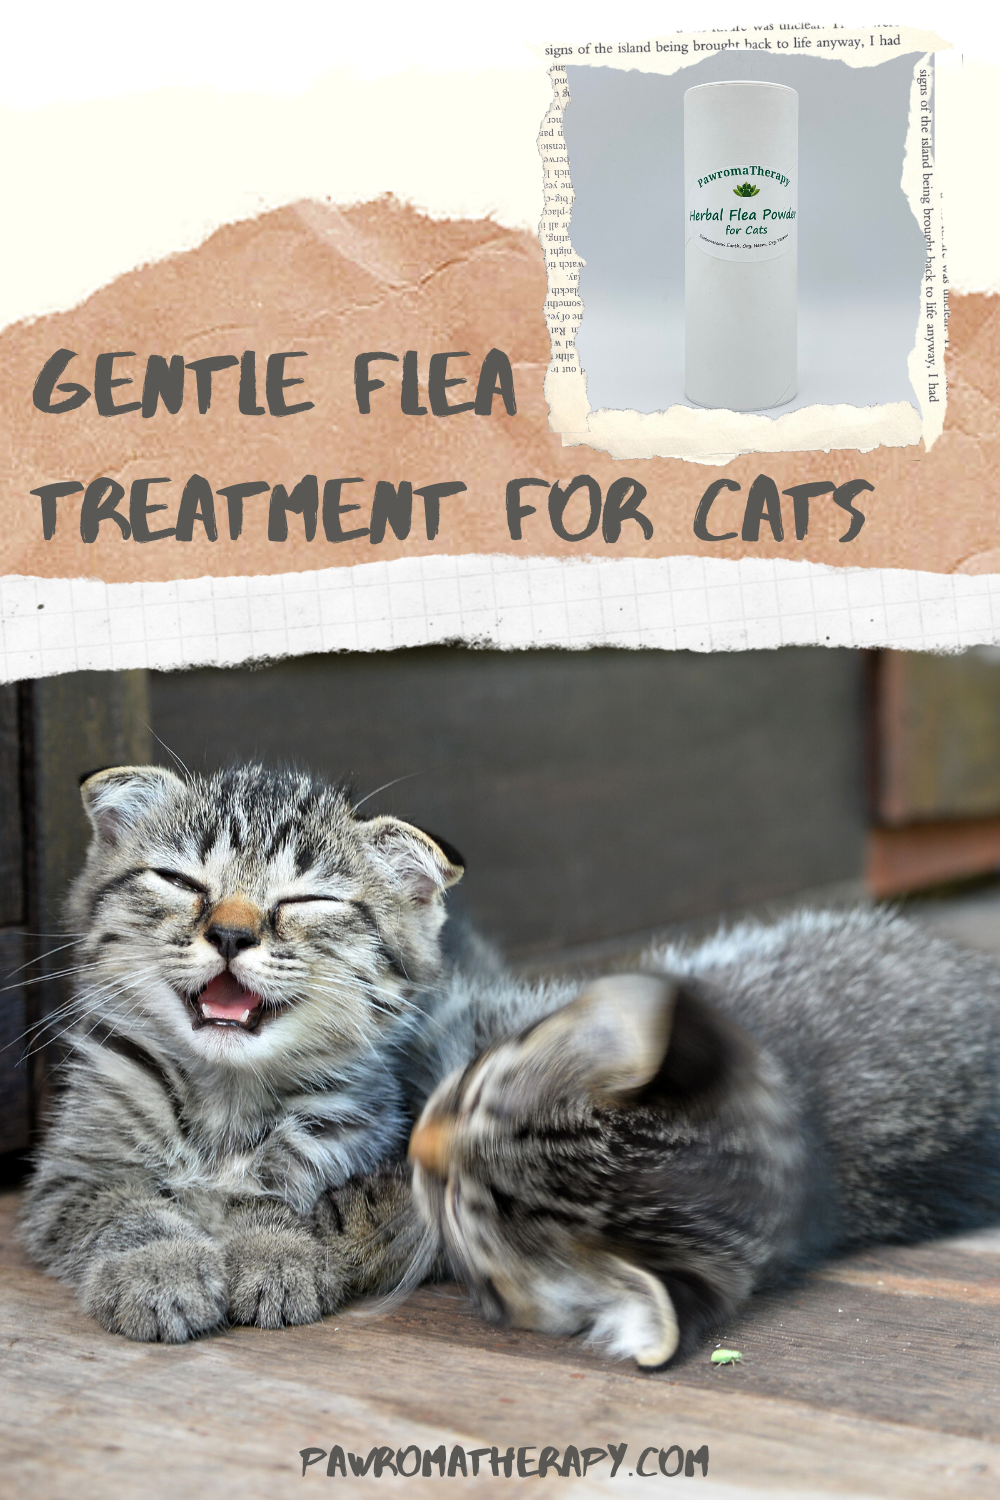 Natural Herbal Flea Powder For Cats Natural Flea Prevention Etsy In 2020 Flea Powder For Cats Flea Powder Cat Fleas